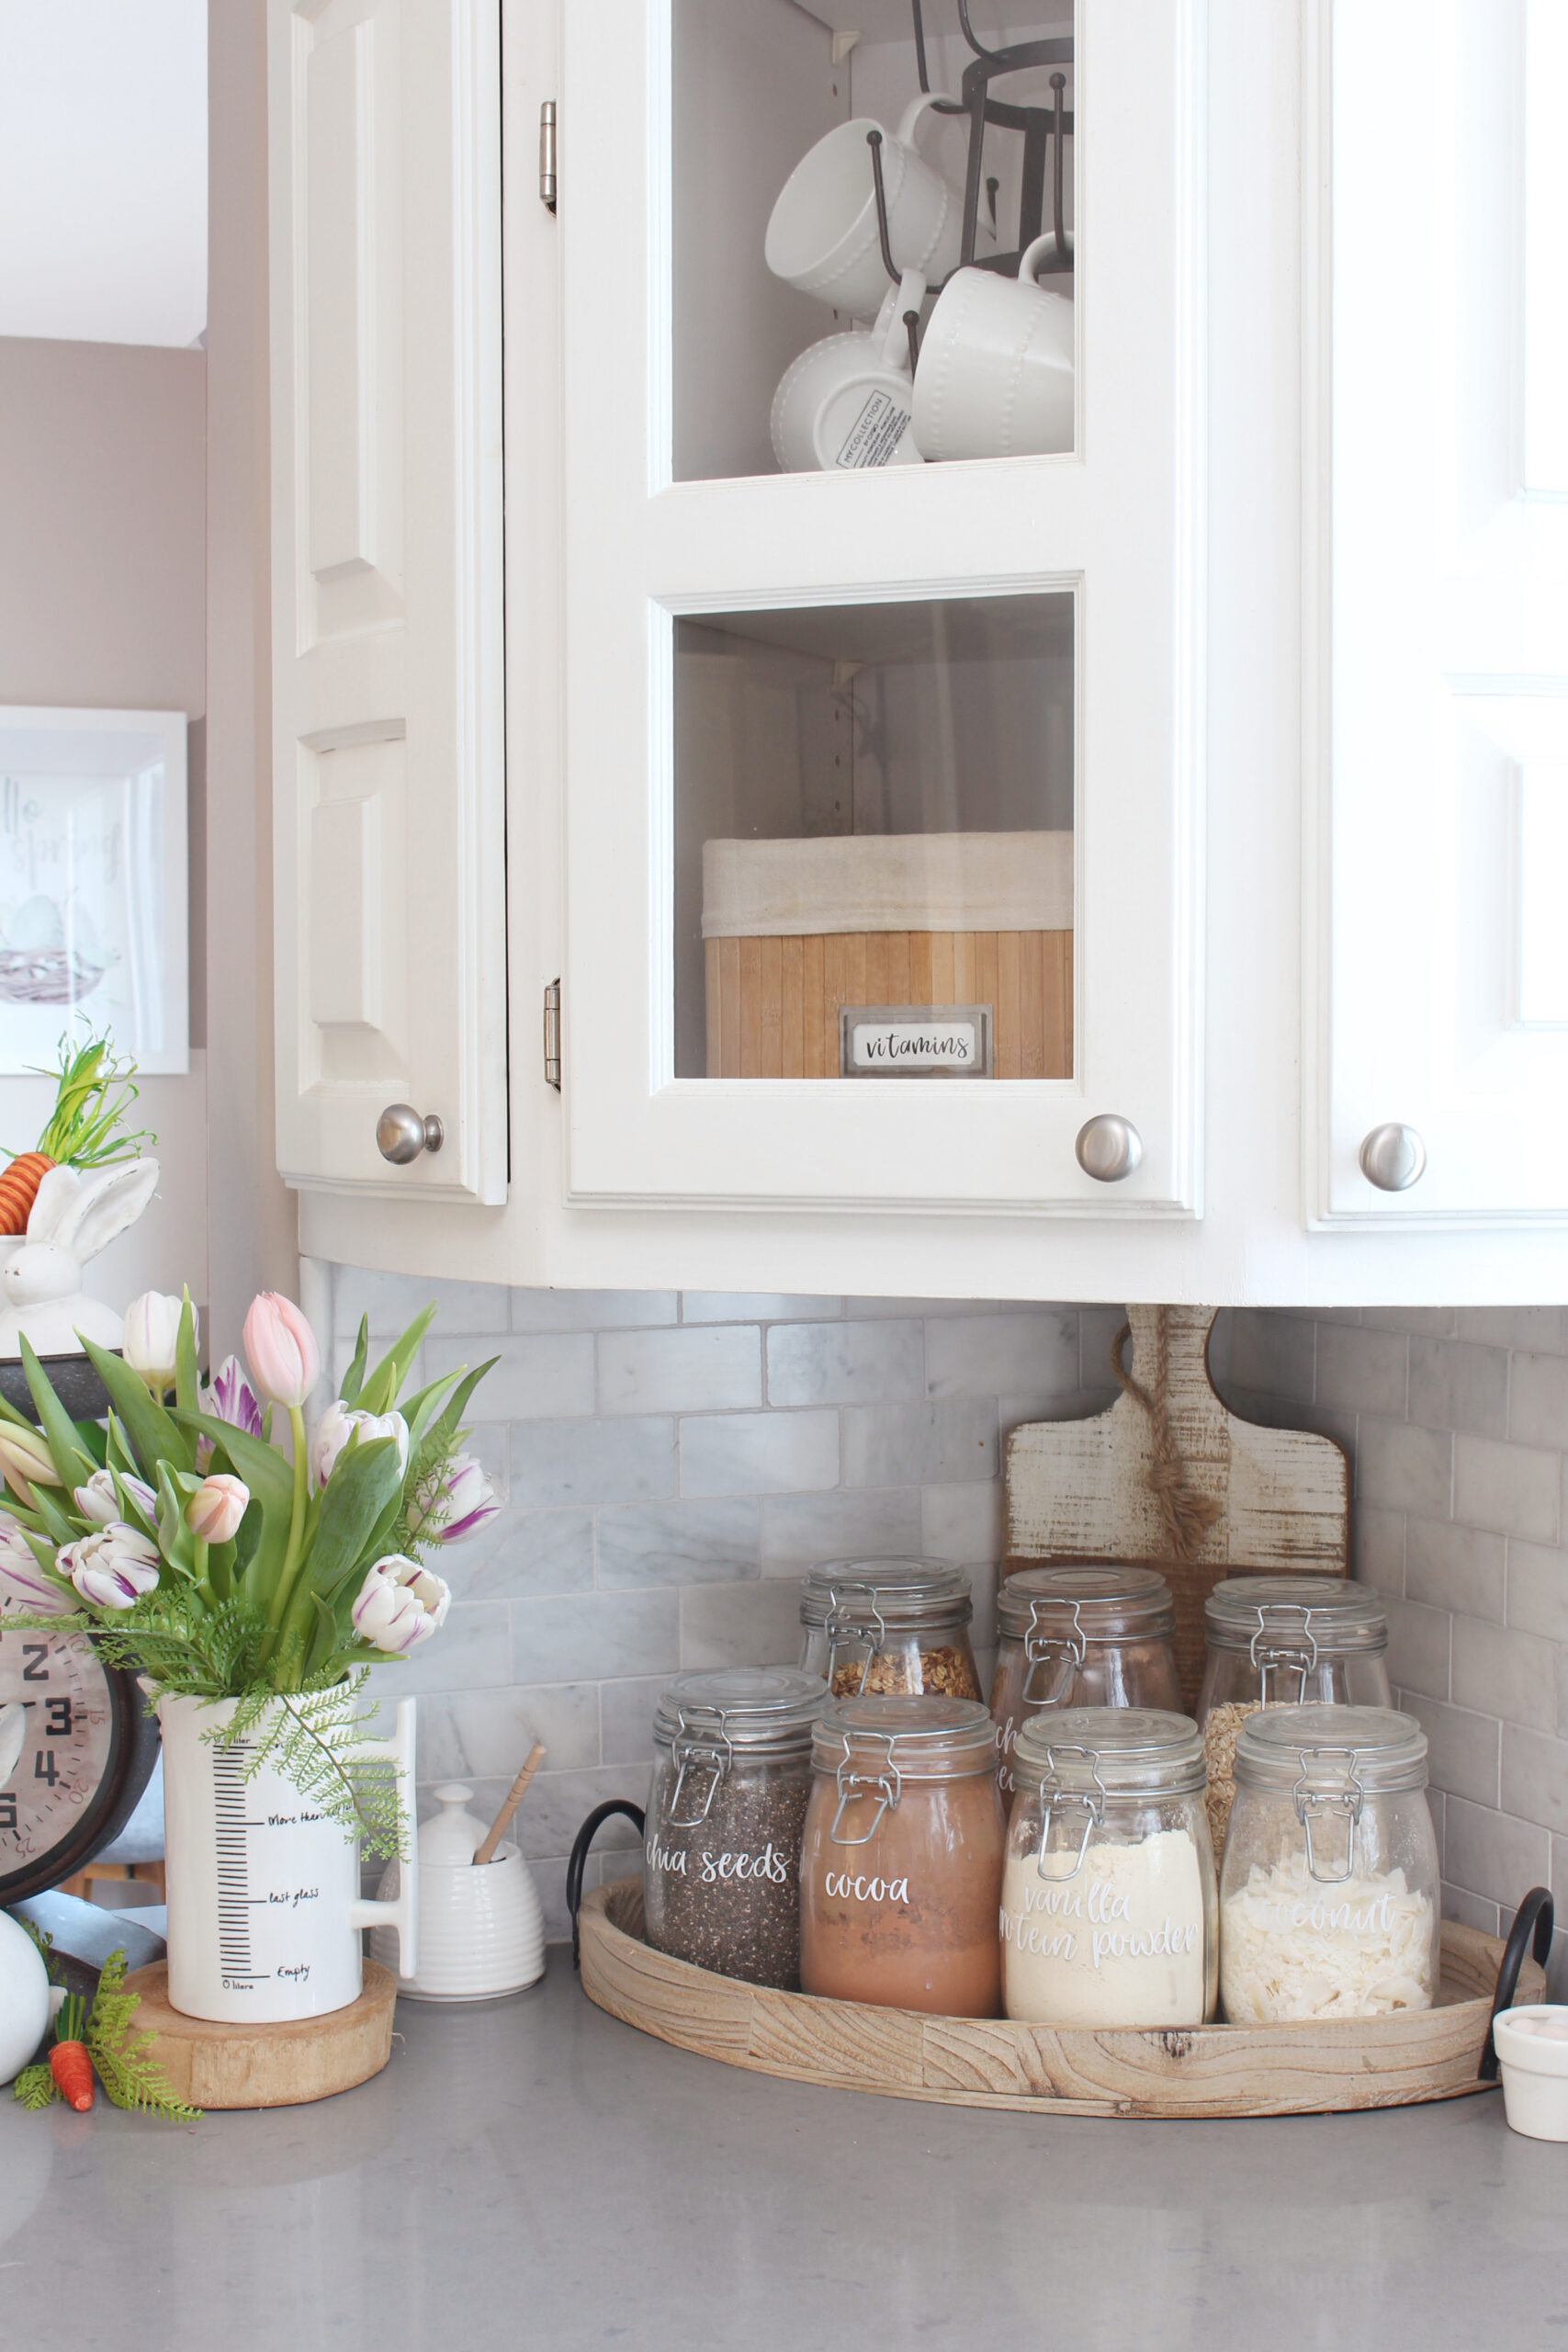 Kitchen corner with glass mason jars filled with dry goods for a smoothie bar.